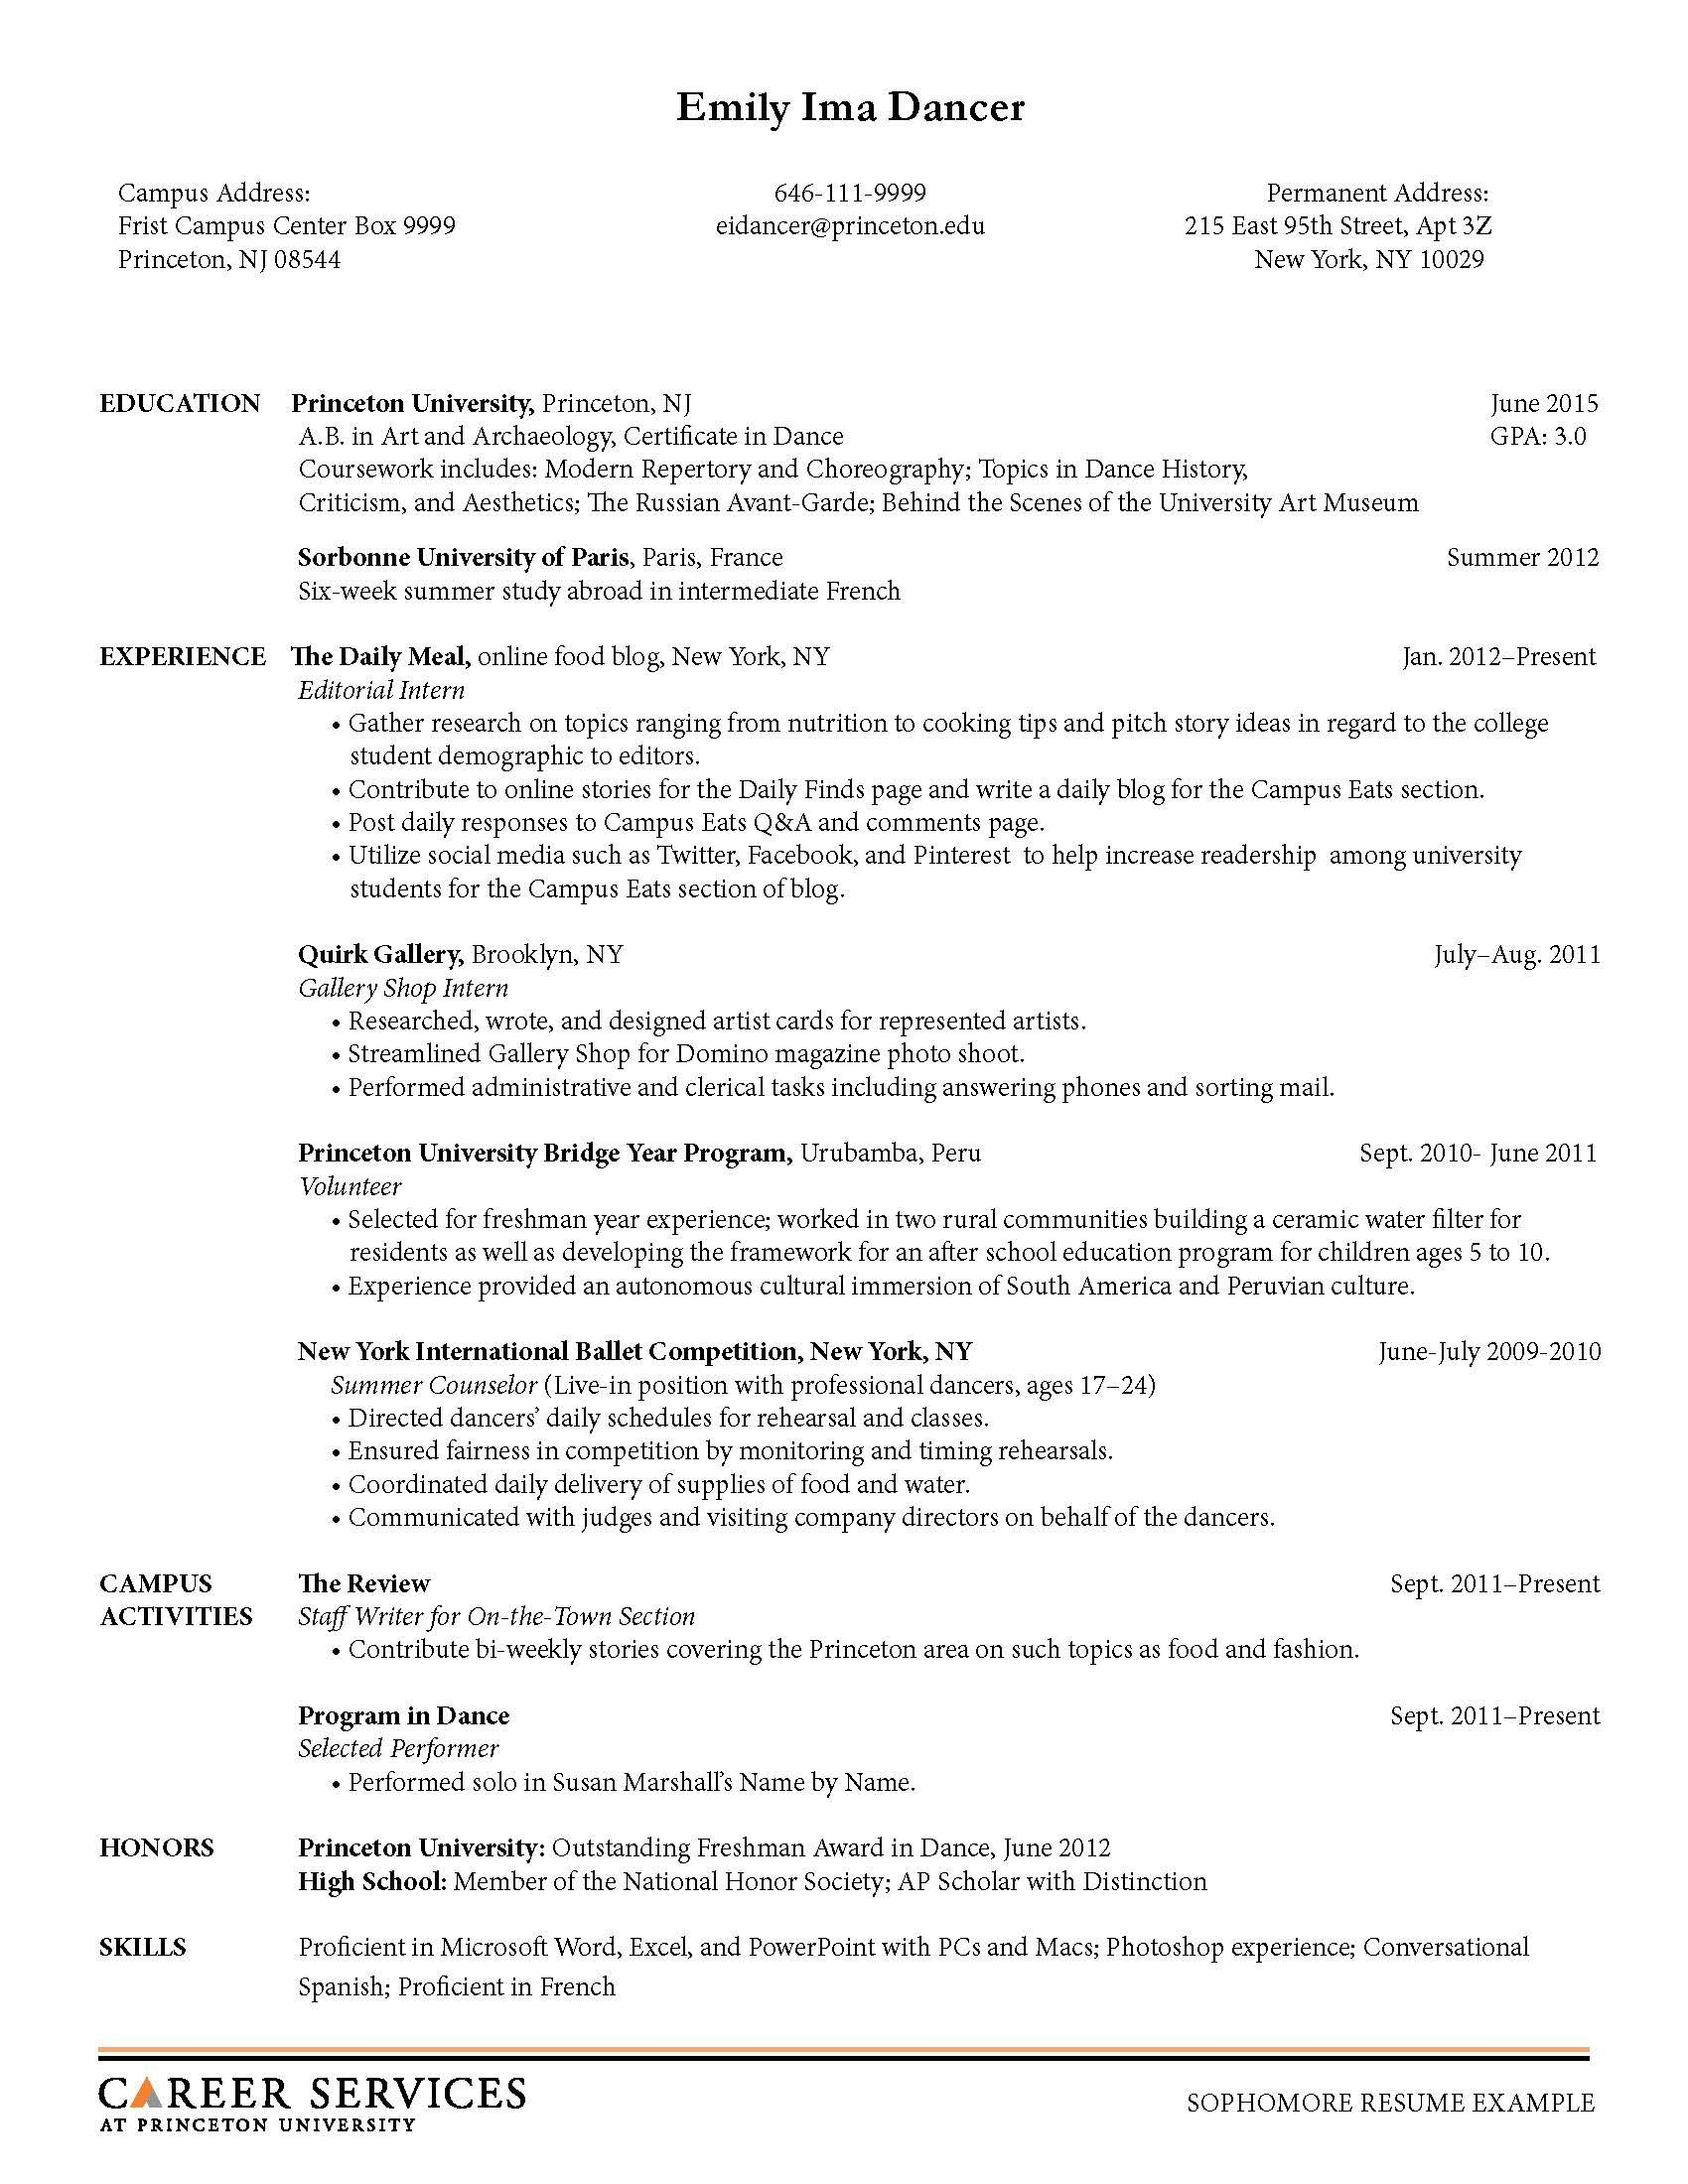 Opposenewapstandardsus  Scenic Sample Resume Resume And Career On Pinterest With Entrancing Sample Social Work Resume Besides Resume For Someone With No Work Experience Furthermore Award Winning Resumes With Nice Strengths To Put On A Resume Also Free Resume Outline In Addition Resume Headlines And Examples Of Student Resumes As Well As Resume Builder Word Additionally Pharmacy Technician Resume Objective From Pinterestcom With Opposenewapstandardsus  Entrancing Sample Resume Resume And Career On Pinterest With Nice Sample Social Work Resume Besides Resume For Someone With No Work Experience Furthermore Award Winning Resumes And Scenic Strengths To Put On A Resume Also Free Resume Outline In Addition Resume Headlines From Pinterestcom